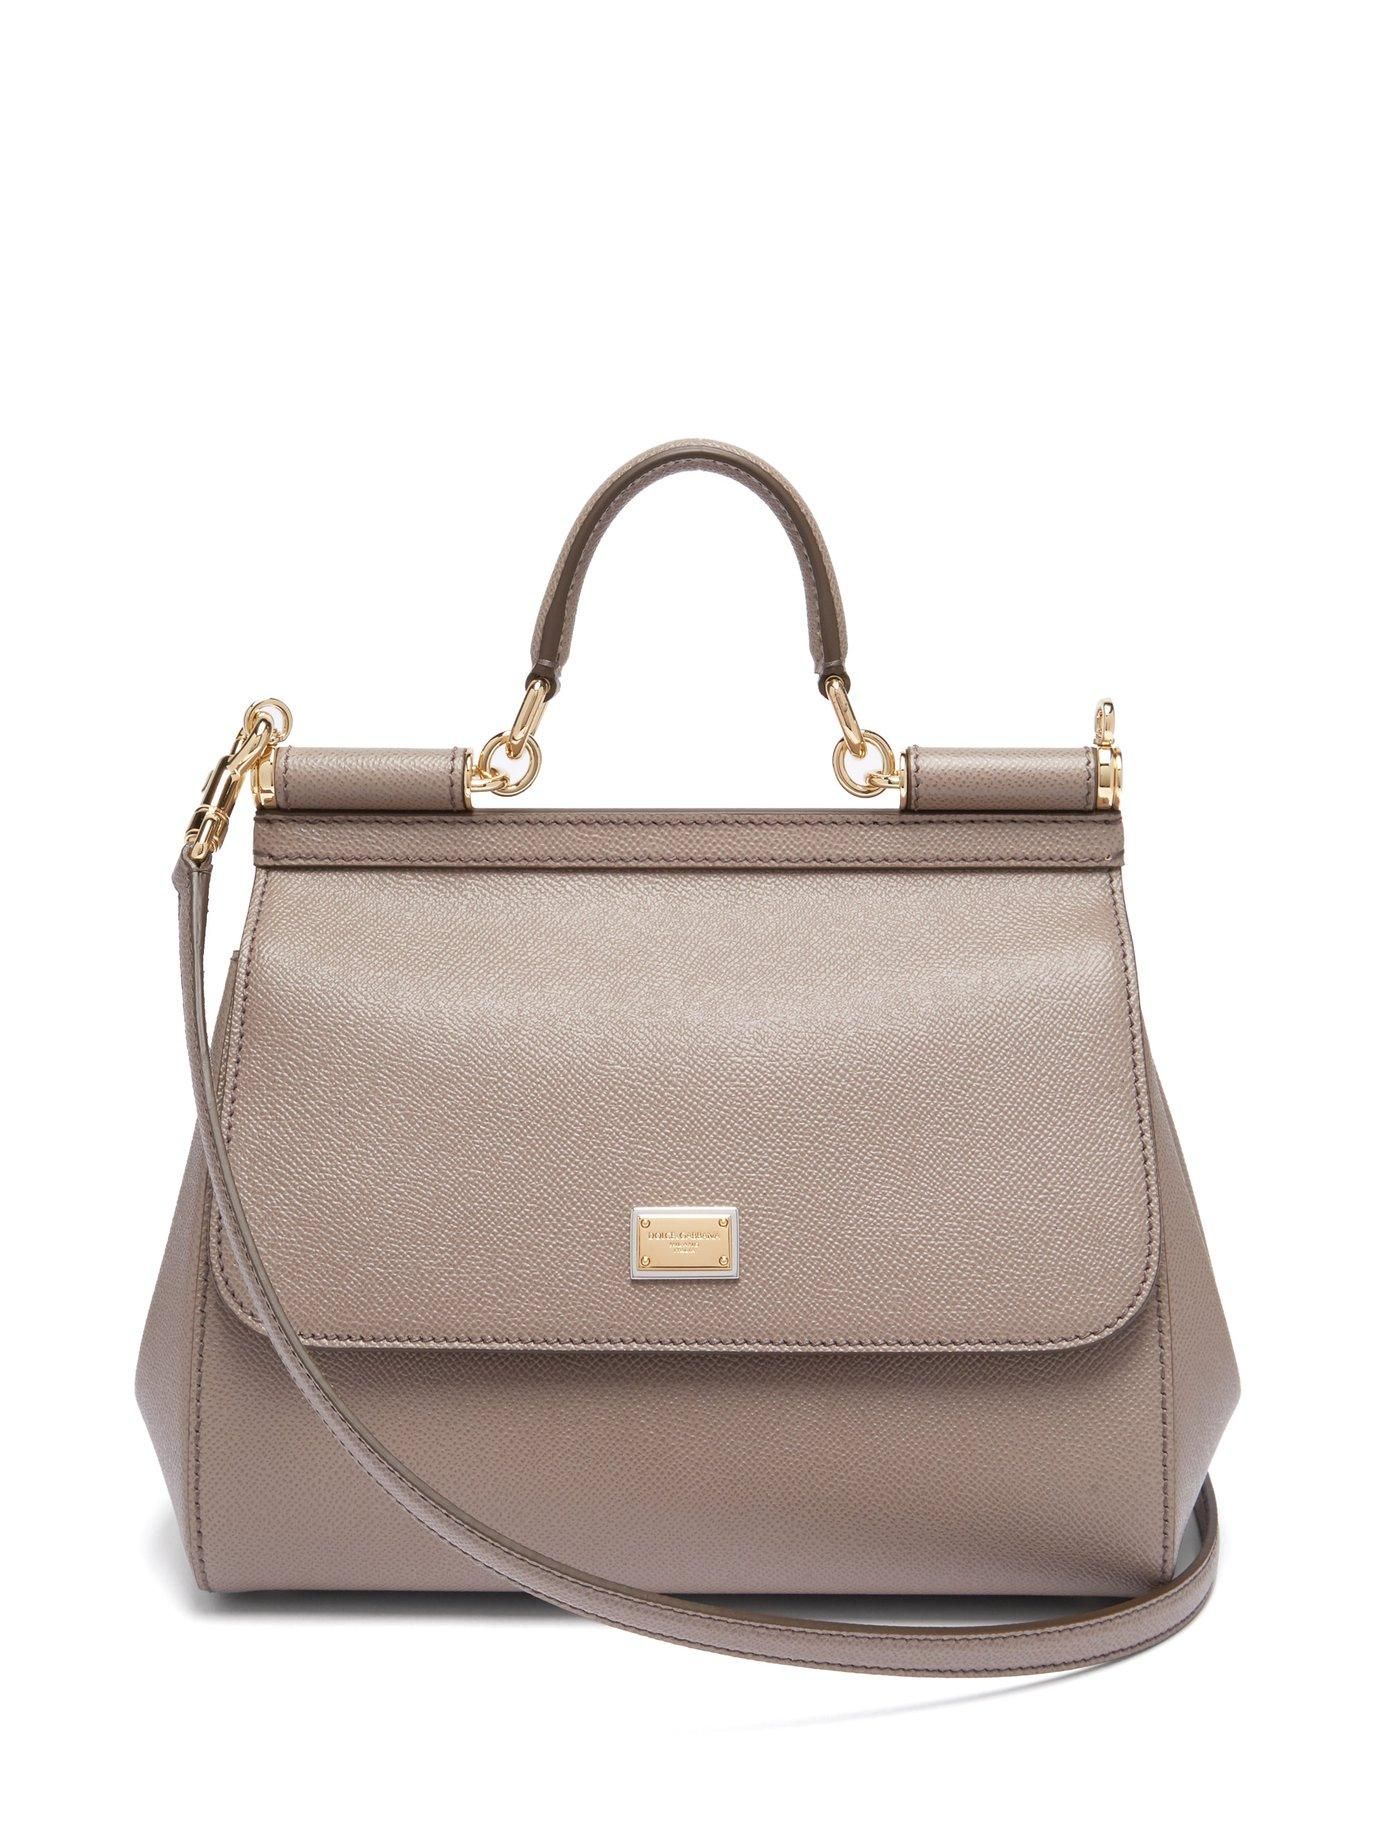 723c423f25 Lyst - Dolce   Gabbana Sicily Medium Dauphine Leather Bag in Gray